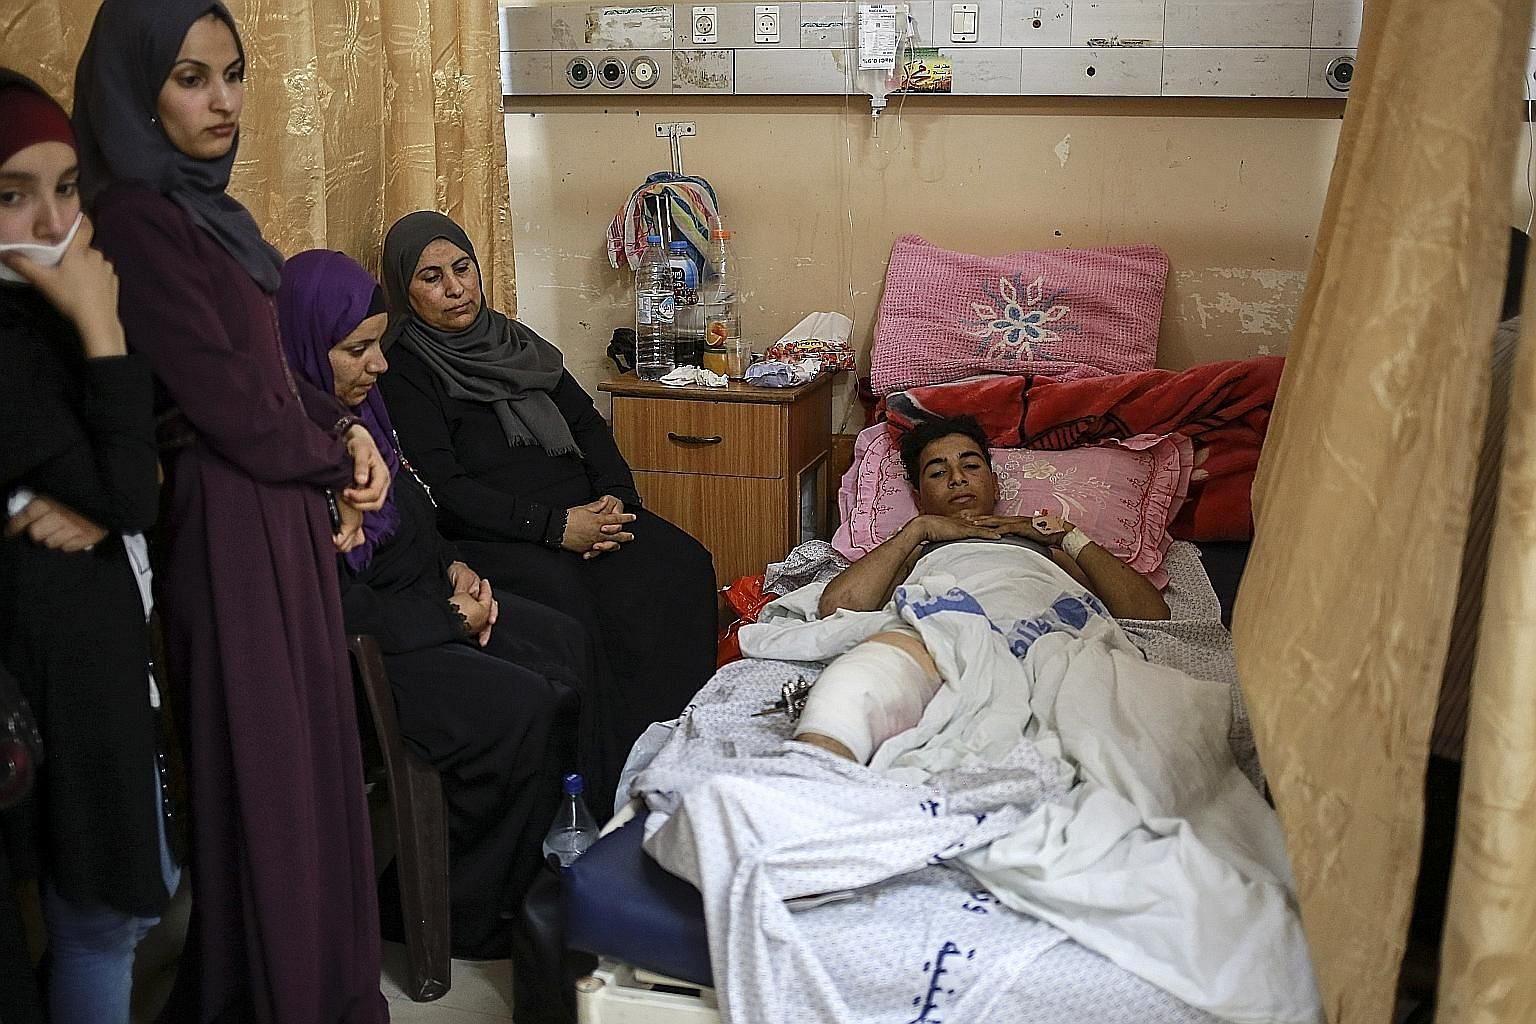 Surgeons from medical charity Doctors without Borders performing surgery at a hospital in Deir al-Balah, Gaza, on a Palestinian man who had received a bullet in his leg during Monday's protests. An alliance of international medical-aid organisations